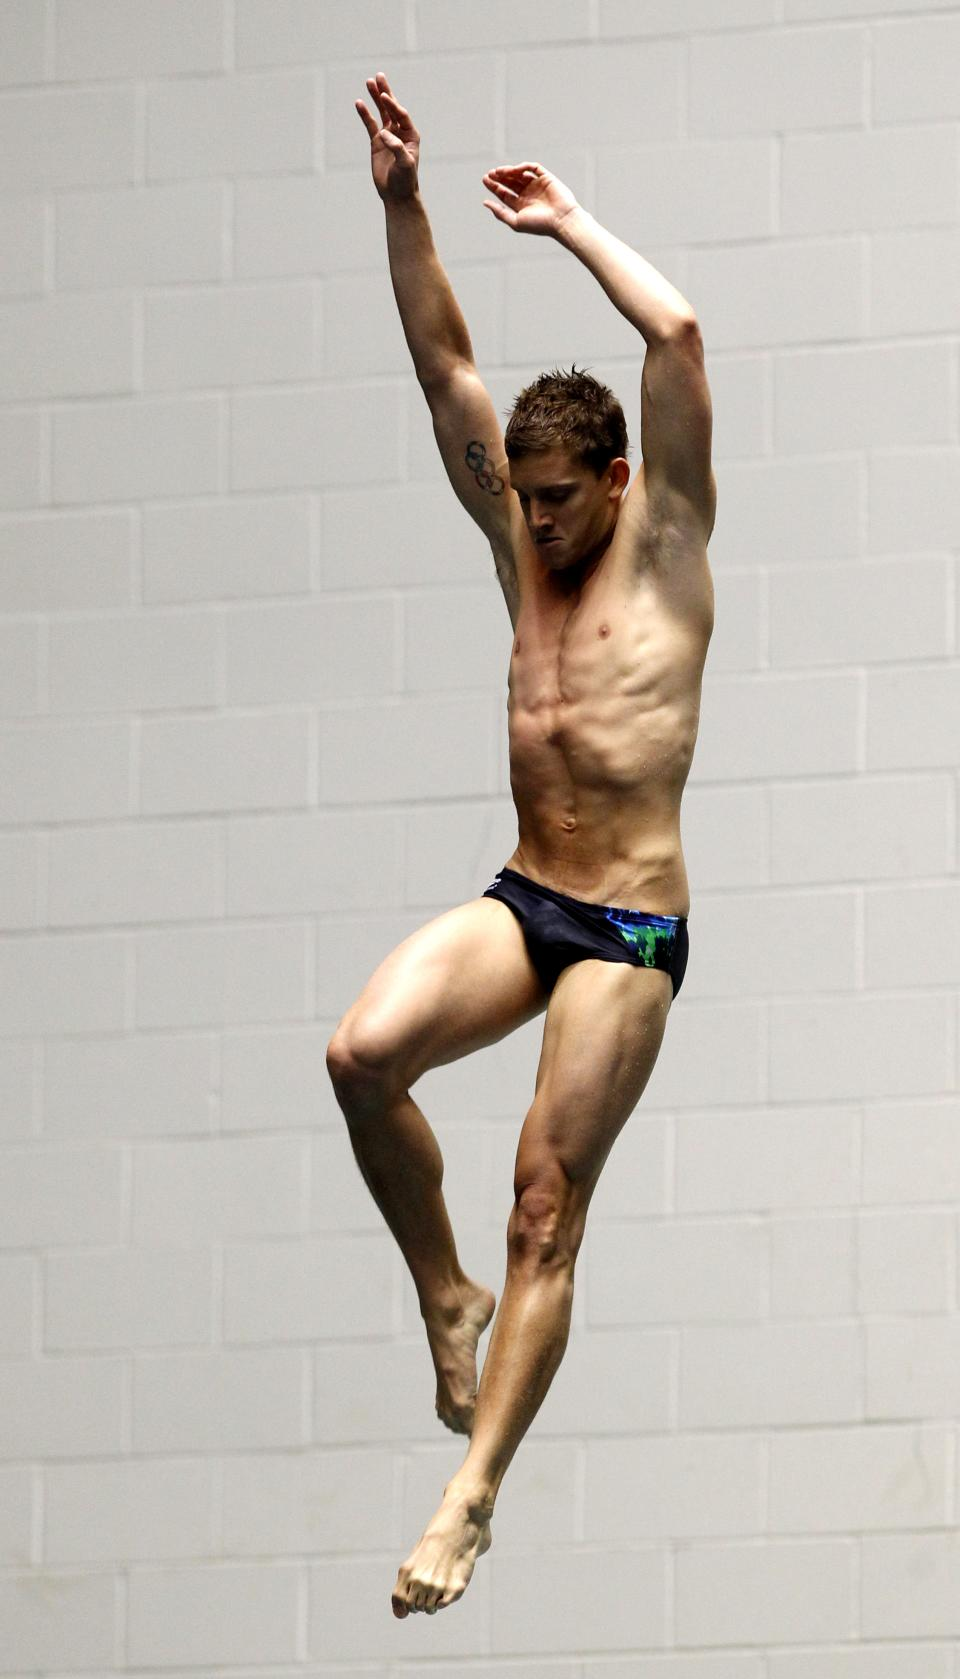 Chris Colwill begins his final dive in the men's 3-meter springboard final at the U.S. Olympic diving trials on Sunday, June 24, 2012, in Federal Way, Wash. Colwill won the event. (AP Photo/Elaine Thompson